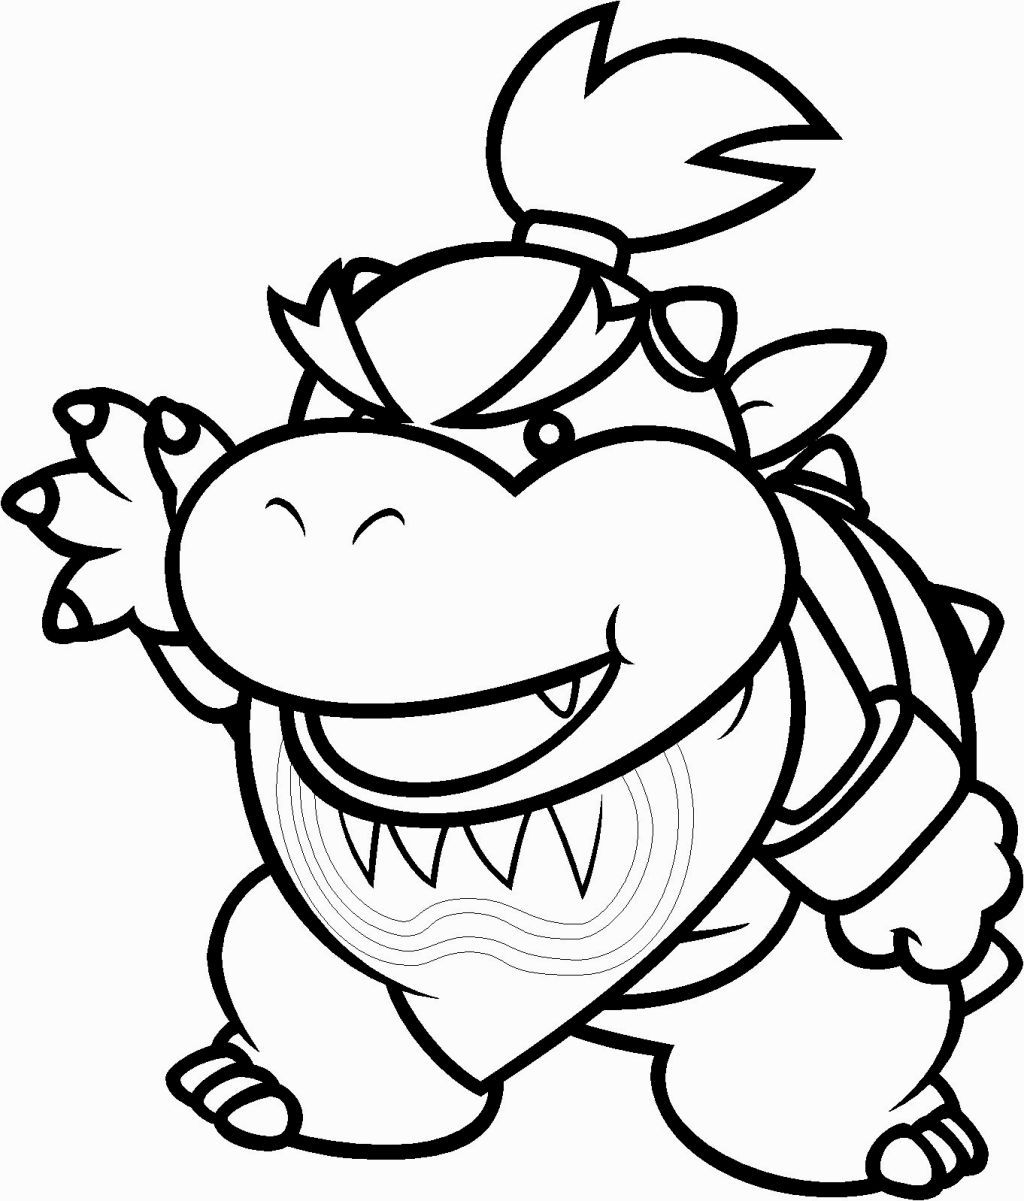 Bowser Jr Coloring Pages Mario Coloring Pages Super Mario Coloring Pages Coloring Pages